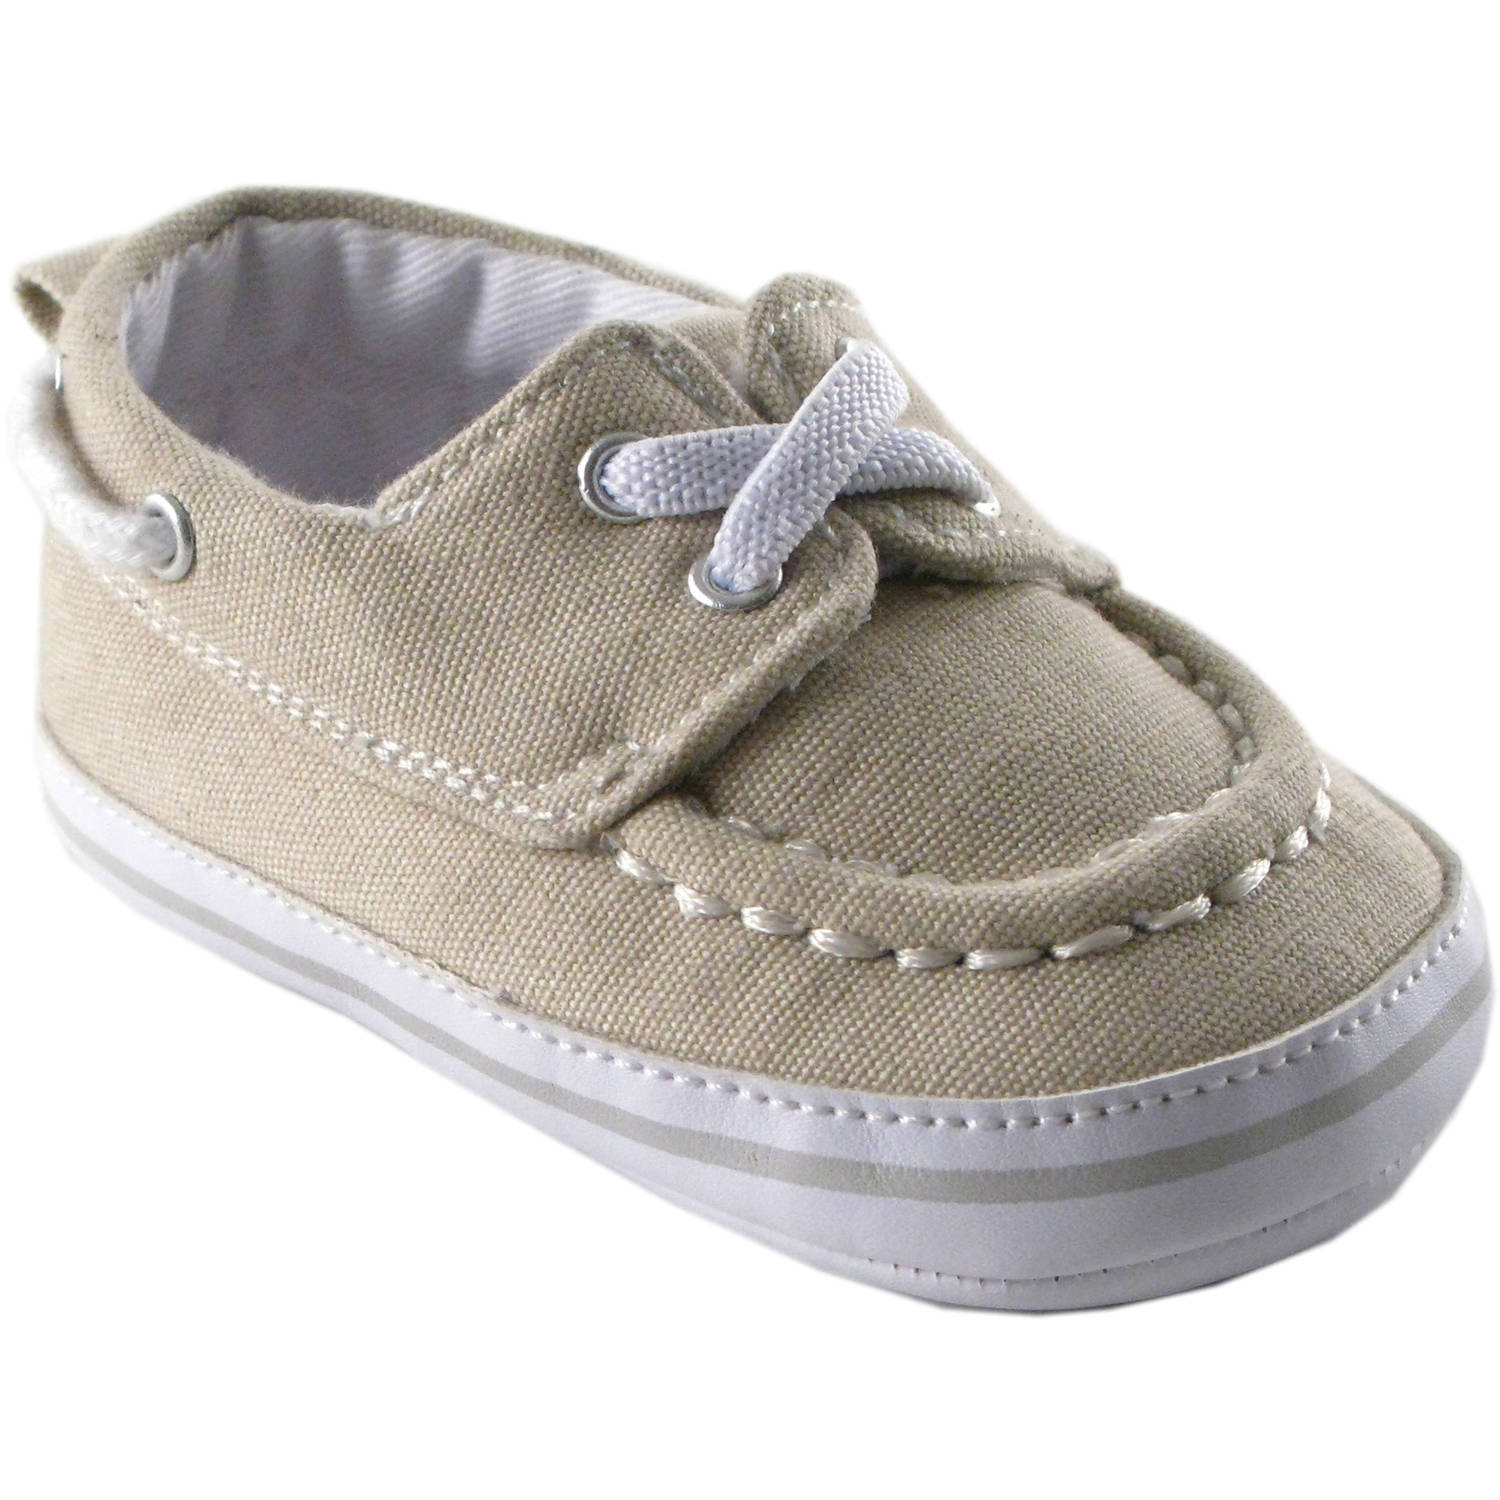 Luvable Friends Newborn Baby Boys Slip-on Shoes